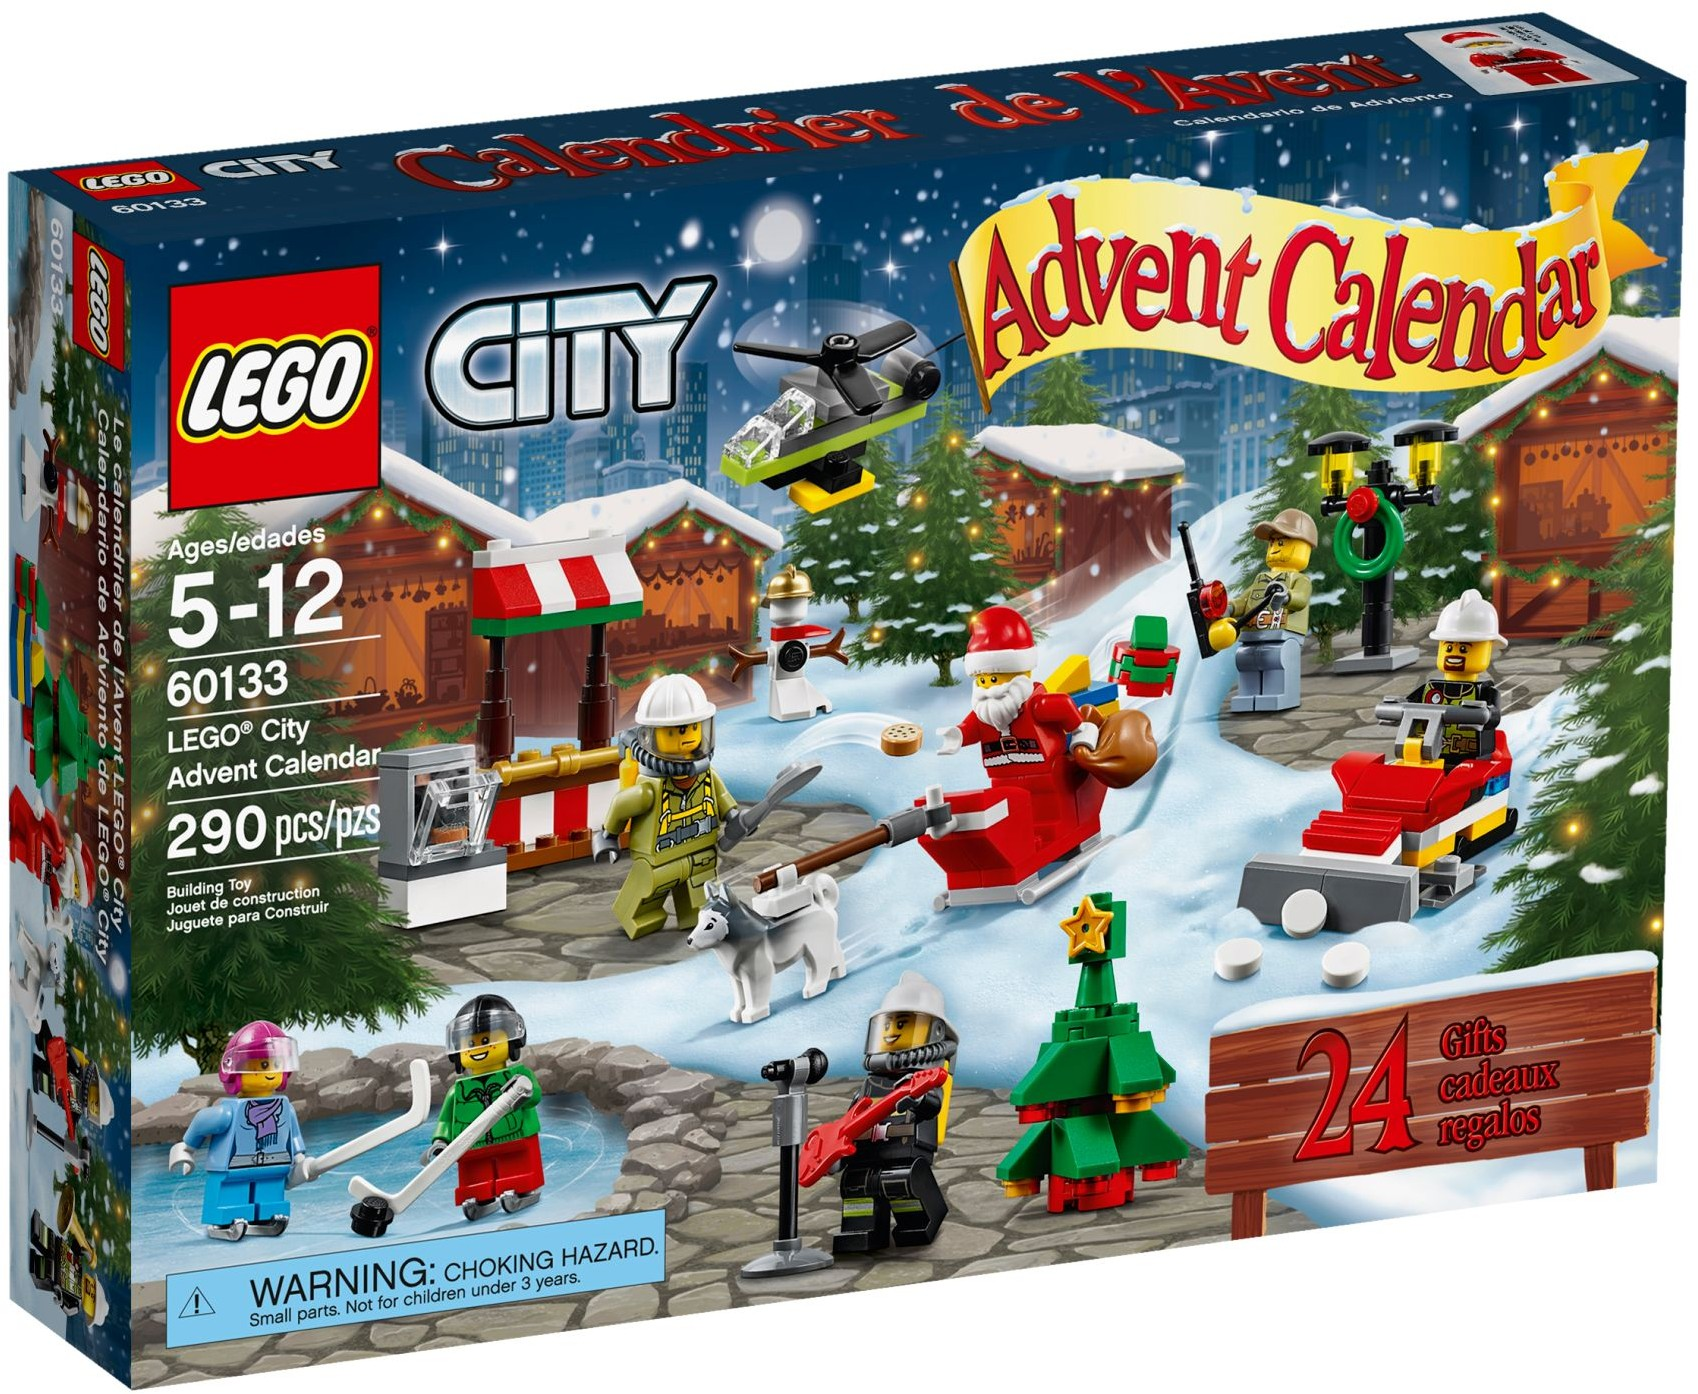 lego city adventni kalendar SUPERLega.cz   obchod se super kostkami lega. LEGO City 60133  lego city adventni kalendar